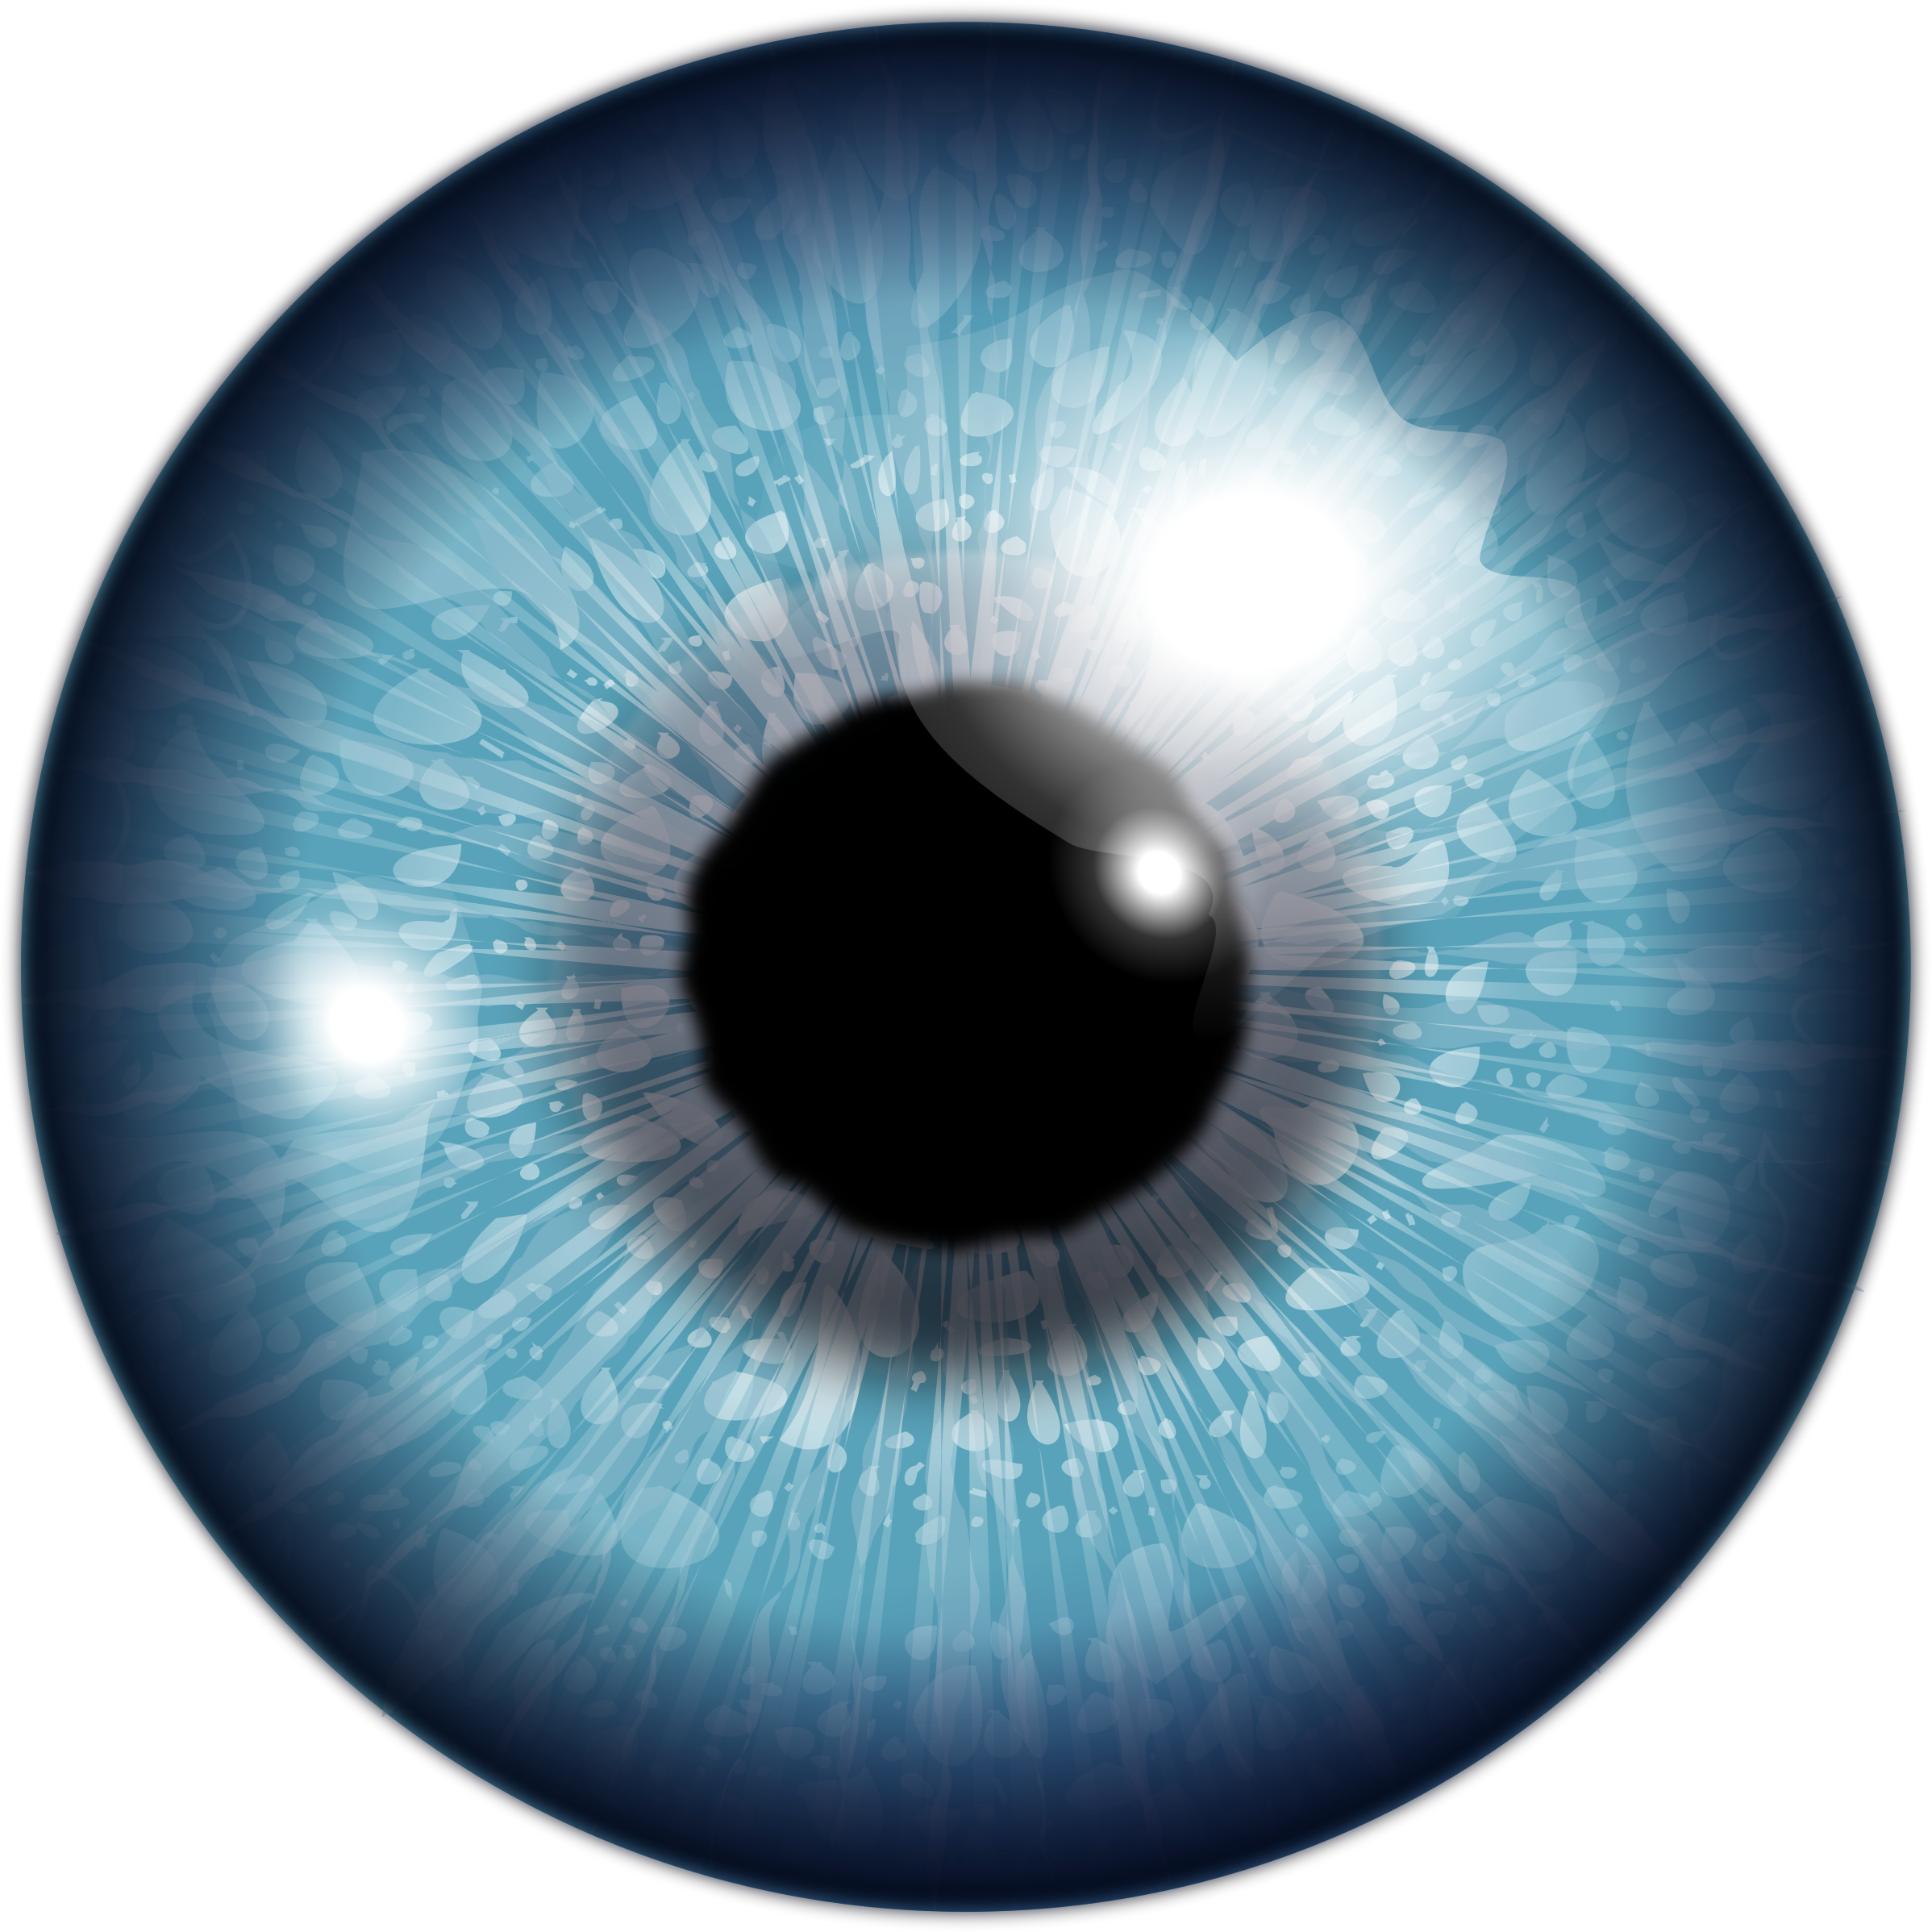 Eyes clipart blue. Png images free download